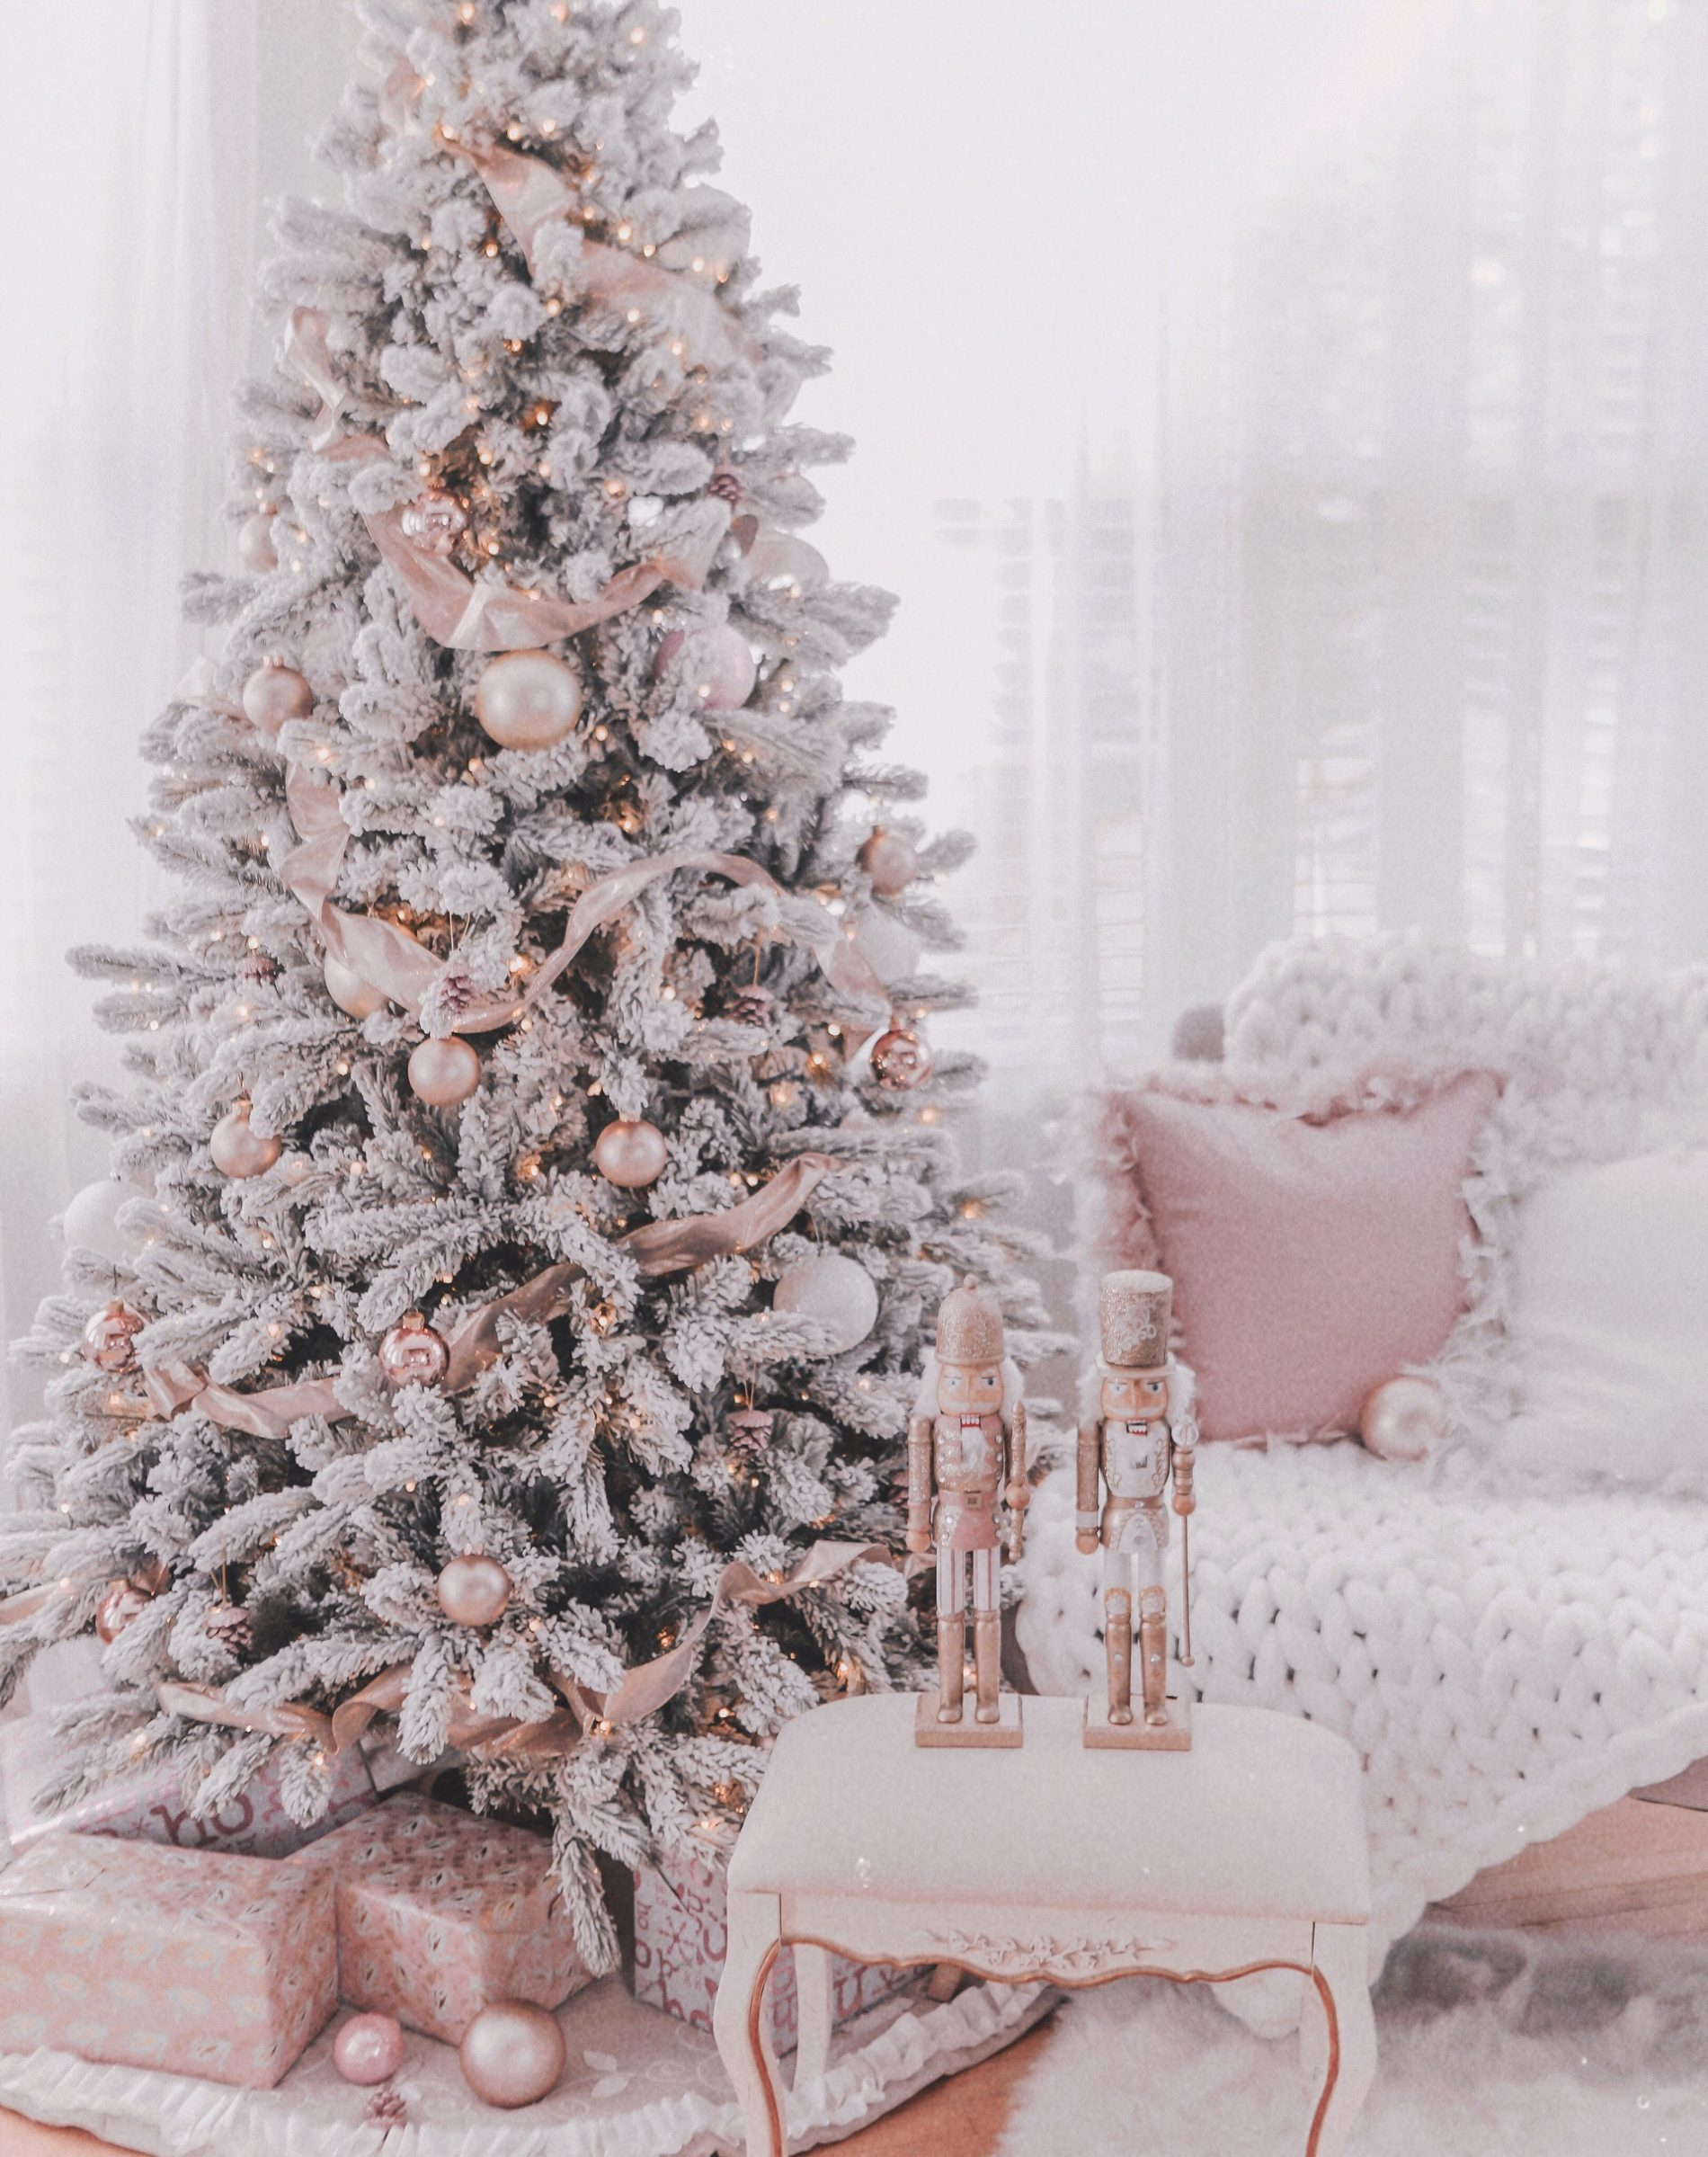 Couture Rose Gold & Blush Christmas Tree Decoration Details Hi Coutures! Here's my holiday shopping details post - as promised! Now I literally just setup the tree a few days ago and we're still making changes and have much more holiday couture decor to add, set up & of course, share with you! But for now here are the details for what I have up so far and for what I've already shared. The Tree Our tree is by King of Christmas and it is the 7.5 foot King flocked pre-lit Christmas tree. It's so fluffy and beautiful and I can promise you that it is worth every cent. I can't even tell you how many comments we've gotten in person already as to how gorgeous it is and it's definitely converting faux-tree haters! We ordered ours in October after hearing that they sell out for good right about now. So loves, if you want it THIS year, you must order now! Rose Gold Ornaments A lot of questions I've received thus far have been where are the ornaments from? Well loves they were super cheap, I'm talking $5 a pack cheap and I think will sell out rather quickly. We went with a mix of rose gold frosted, rose gold glitter and than jumbo rose gold and gold ornaments which I've linked all in this post. You can buy online & have them shipped or pick them up in the store. I've also added these darling little Eiffel Tower glitter ornaments to the tree and my goodness are they lovely! Ribbon My desire for the tree this year was to have a rose gold & blush look as much as possible and to achieve that we looked to ribbon. I've linked some of the different ribbons that we added to the tree In this post. However, I didn't see one style that we used a lot of on the Michaels.com website. It's rose gold and very shimmery. The Nutcrackers These babies are from Michaels as well and wow did they sell out FAST! I just saw them in stock online, a few days ago but now they're gone. I also picked up the last 2 from my local store last weekend. There is a chance they will be restocked and available at your local store so make sure you check. I honestly barely set up the tree when I shared my post and I was so surprised at the response so far! Thank you all for your love and support and I absolutely can't wait to share more of our progress with you! Here's to enjoying some yummy Starbucks coffee while you decorate with some lovely smelling candles lit as well. Happy Couture Holidays in November!